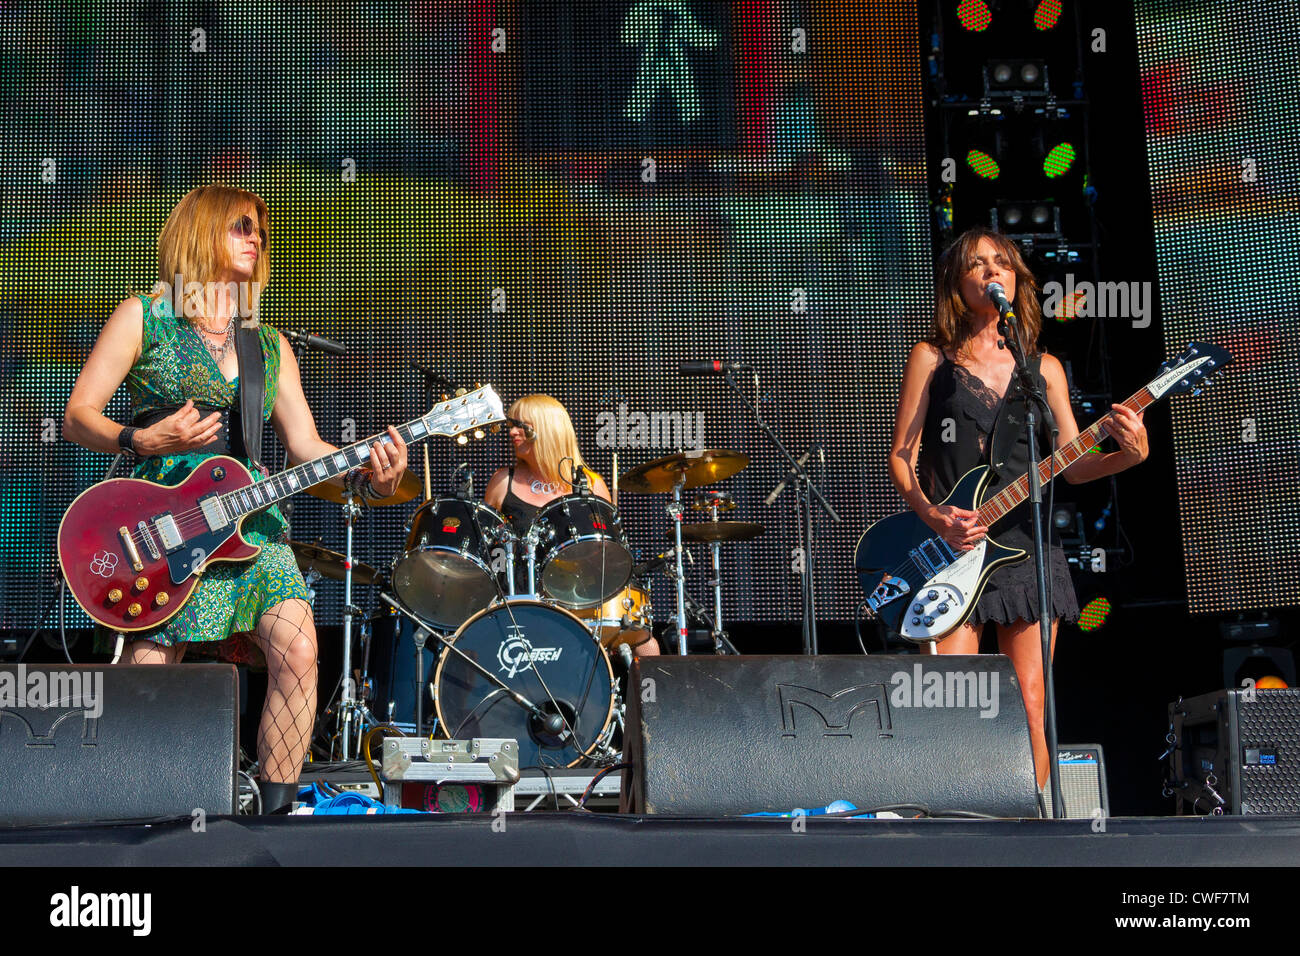 The group The Bangles performing on stage at the Rewind Festival Henley on Thames 2012. PER0247 - Stock Image